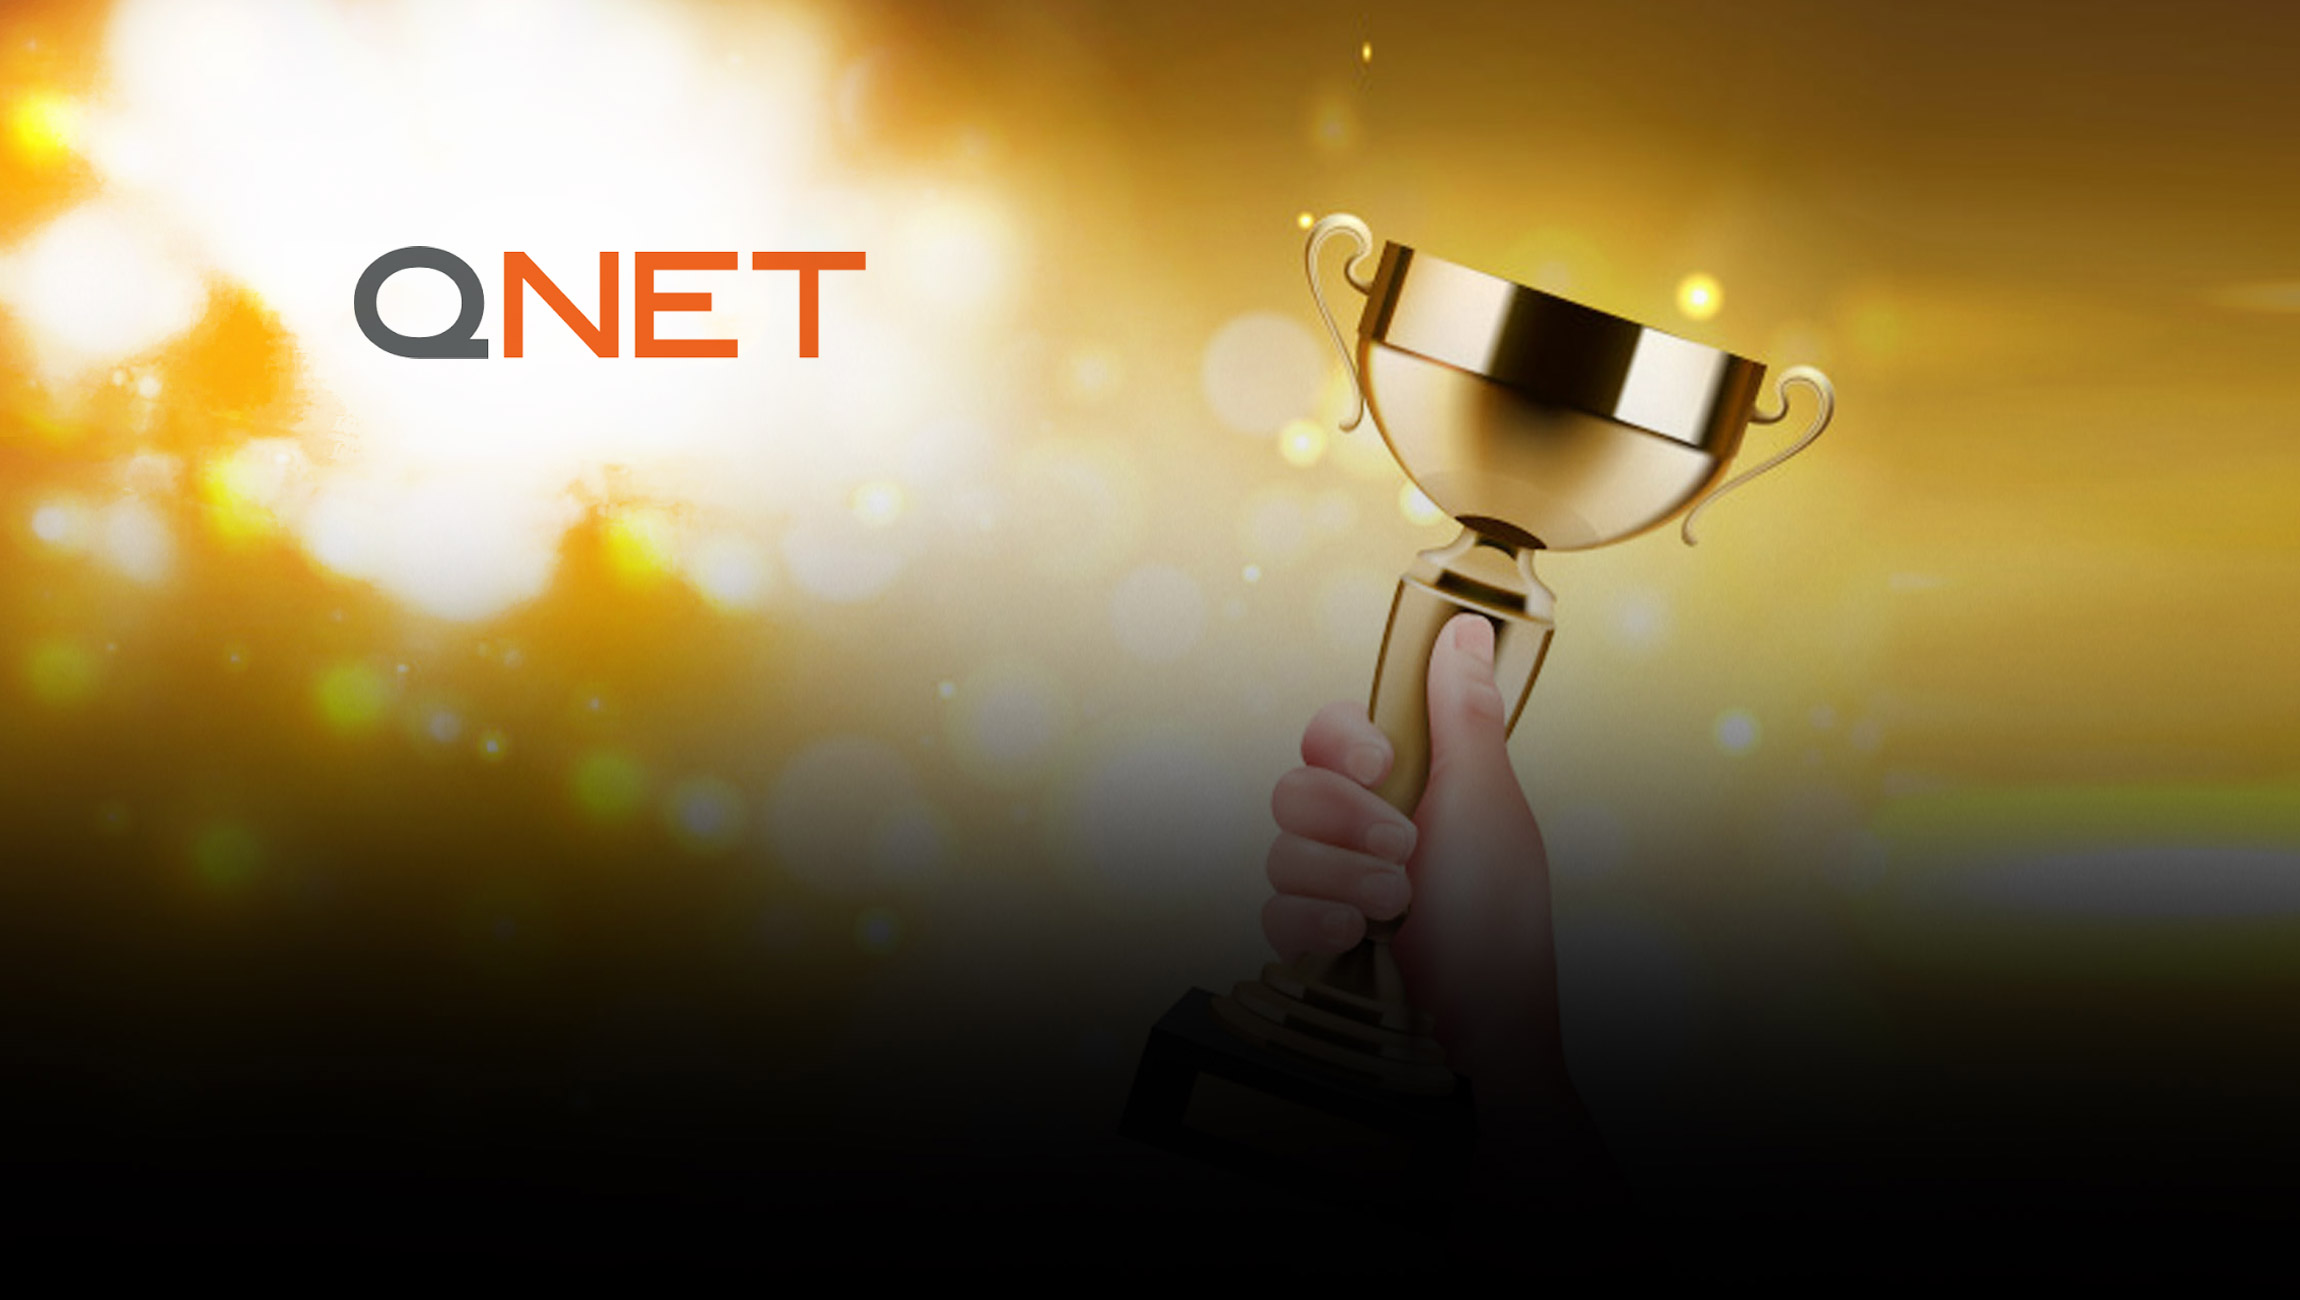 QNET Bags Awards For Mobile App Innovation And Outstanding CSR Initiatives